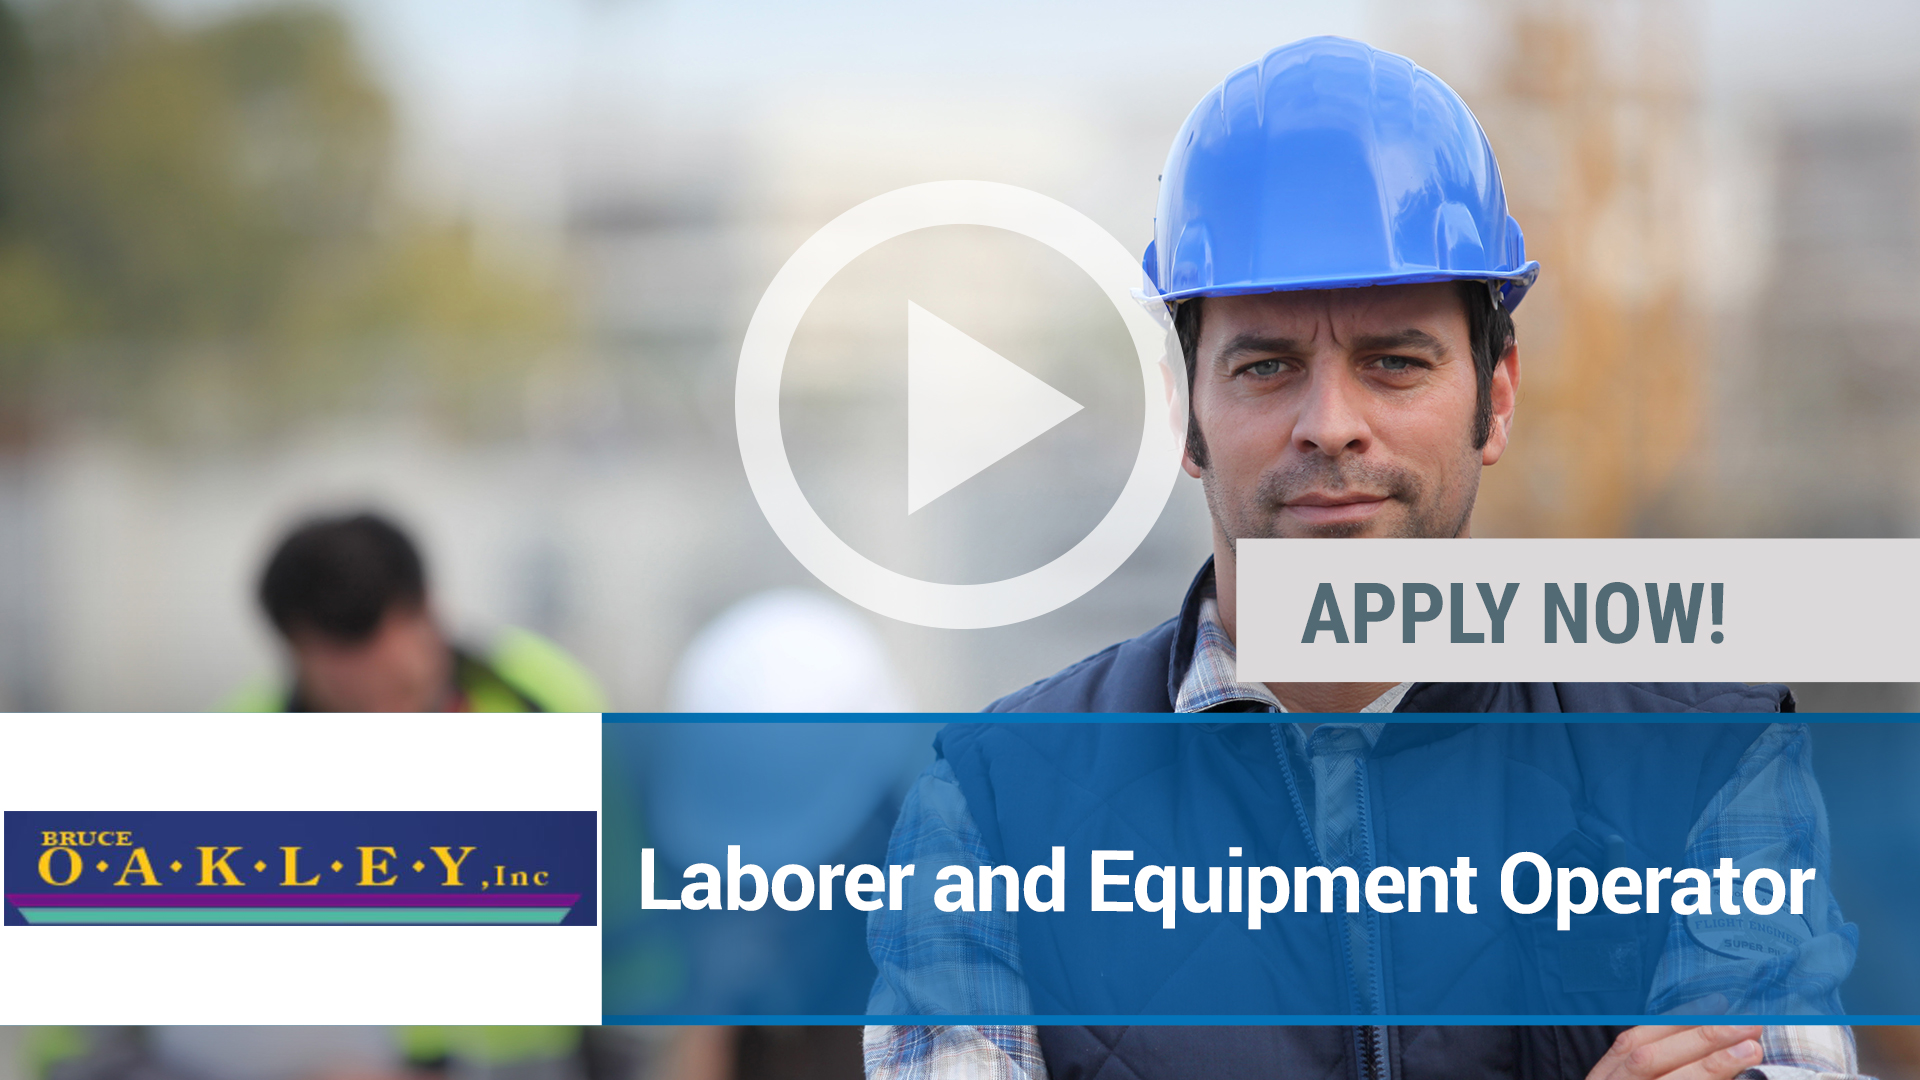 Watch our careers video for available job opening Laborer and Equipment Operator in Saint Louis, MO